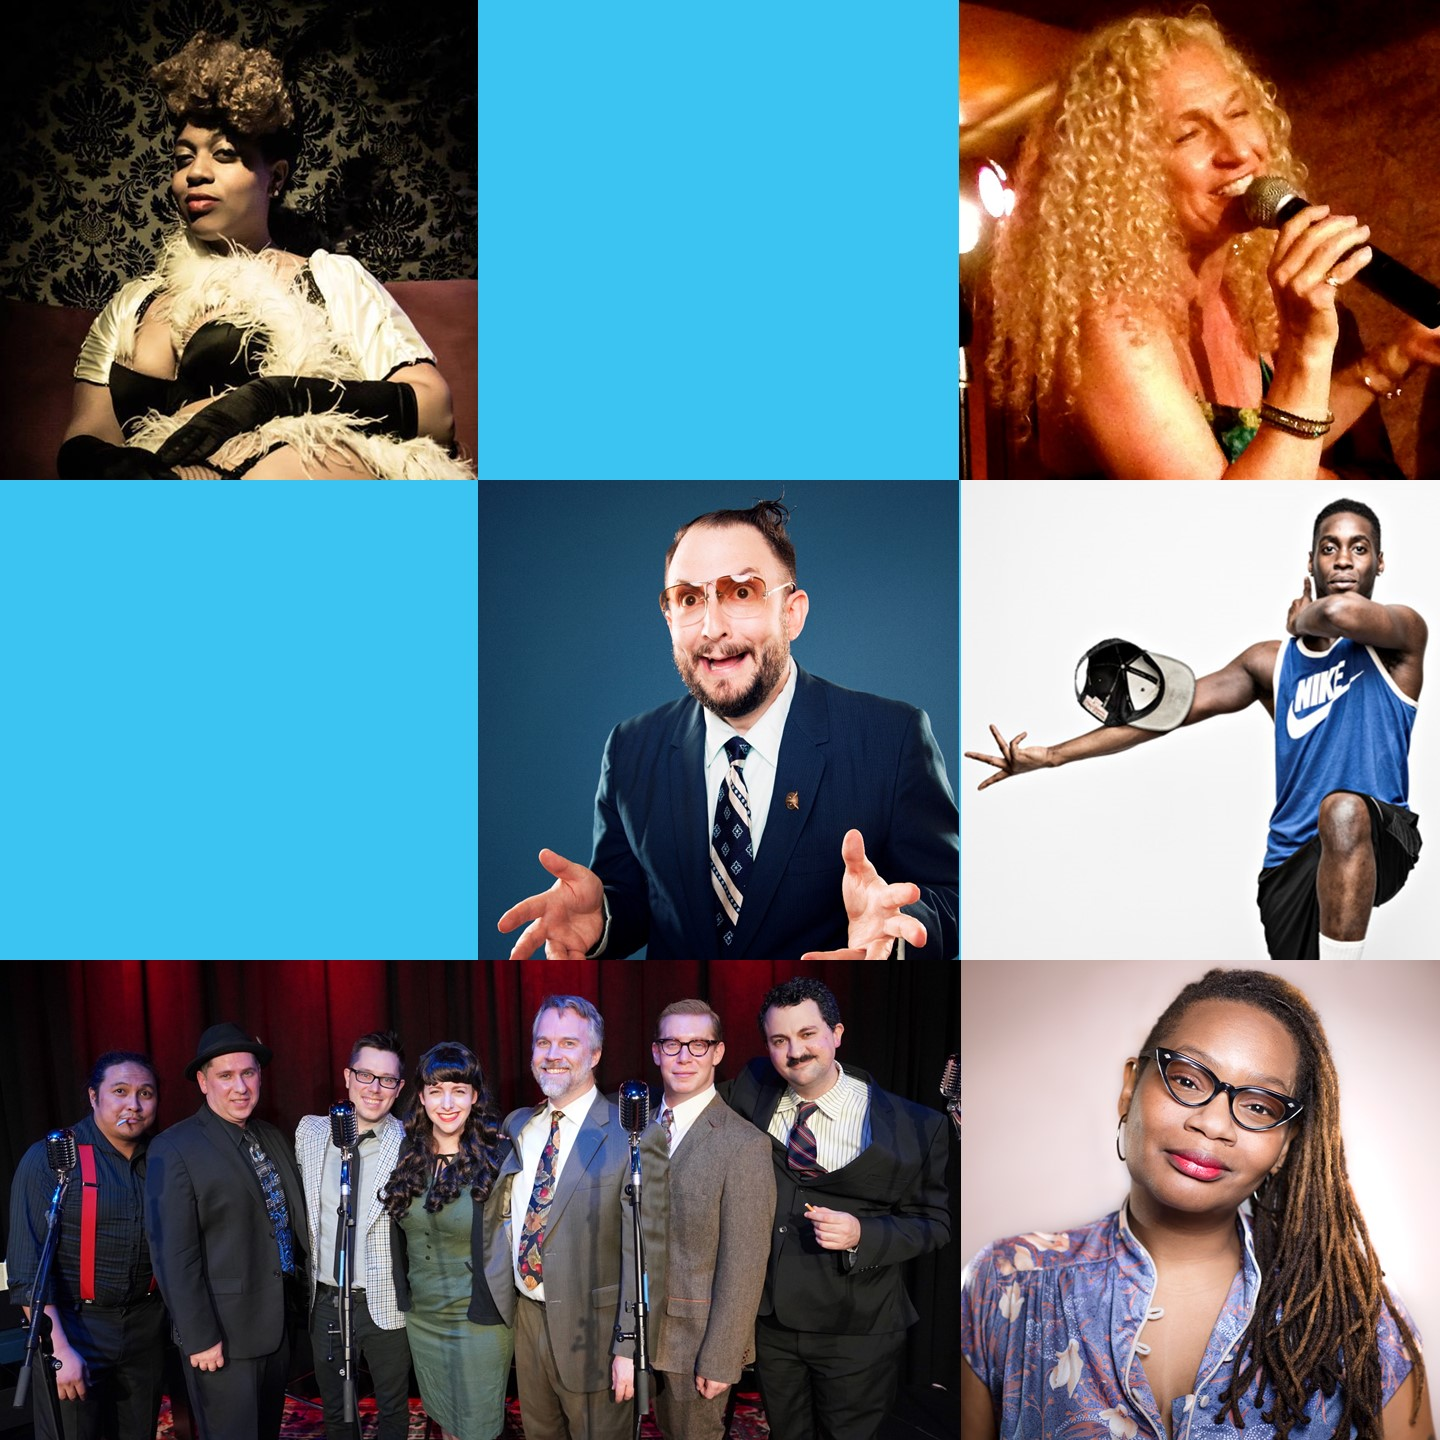 September 21 & 22, 2018   Hosted by    Dale Seever     FEATURING:    Irini Res & The Jazz Mix  (Jazz Combo Icons)  Shalewa Sharpe  (Sly and Goofy Standup)  X Plus One  (Improv SciFi Radio Show)  Mandarine Moon-Fly  (Scintillating Burlesque)  Kellz Zada  (Amazing Flexn Dance)